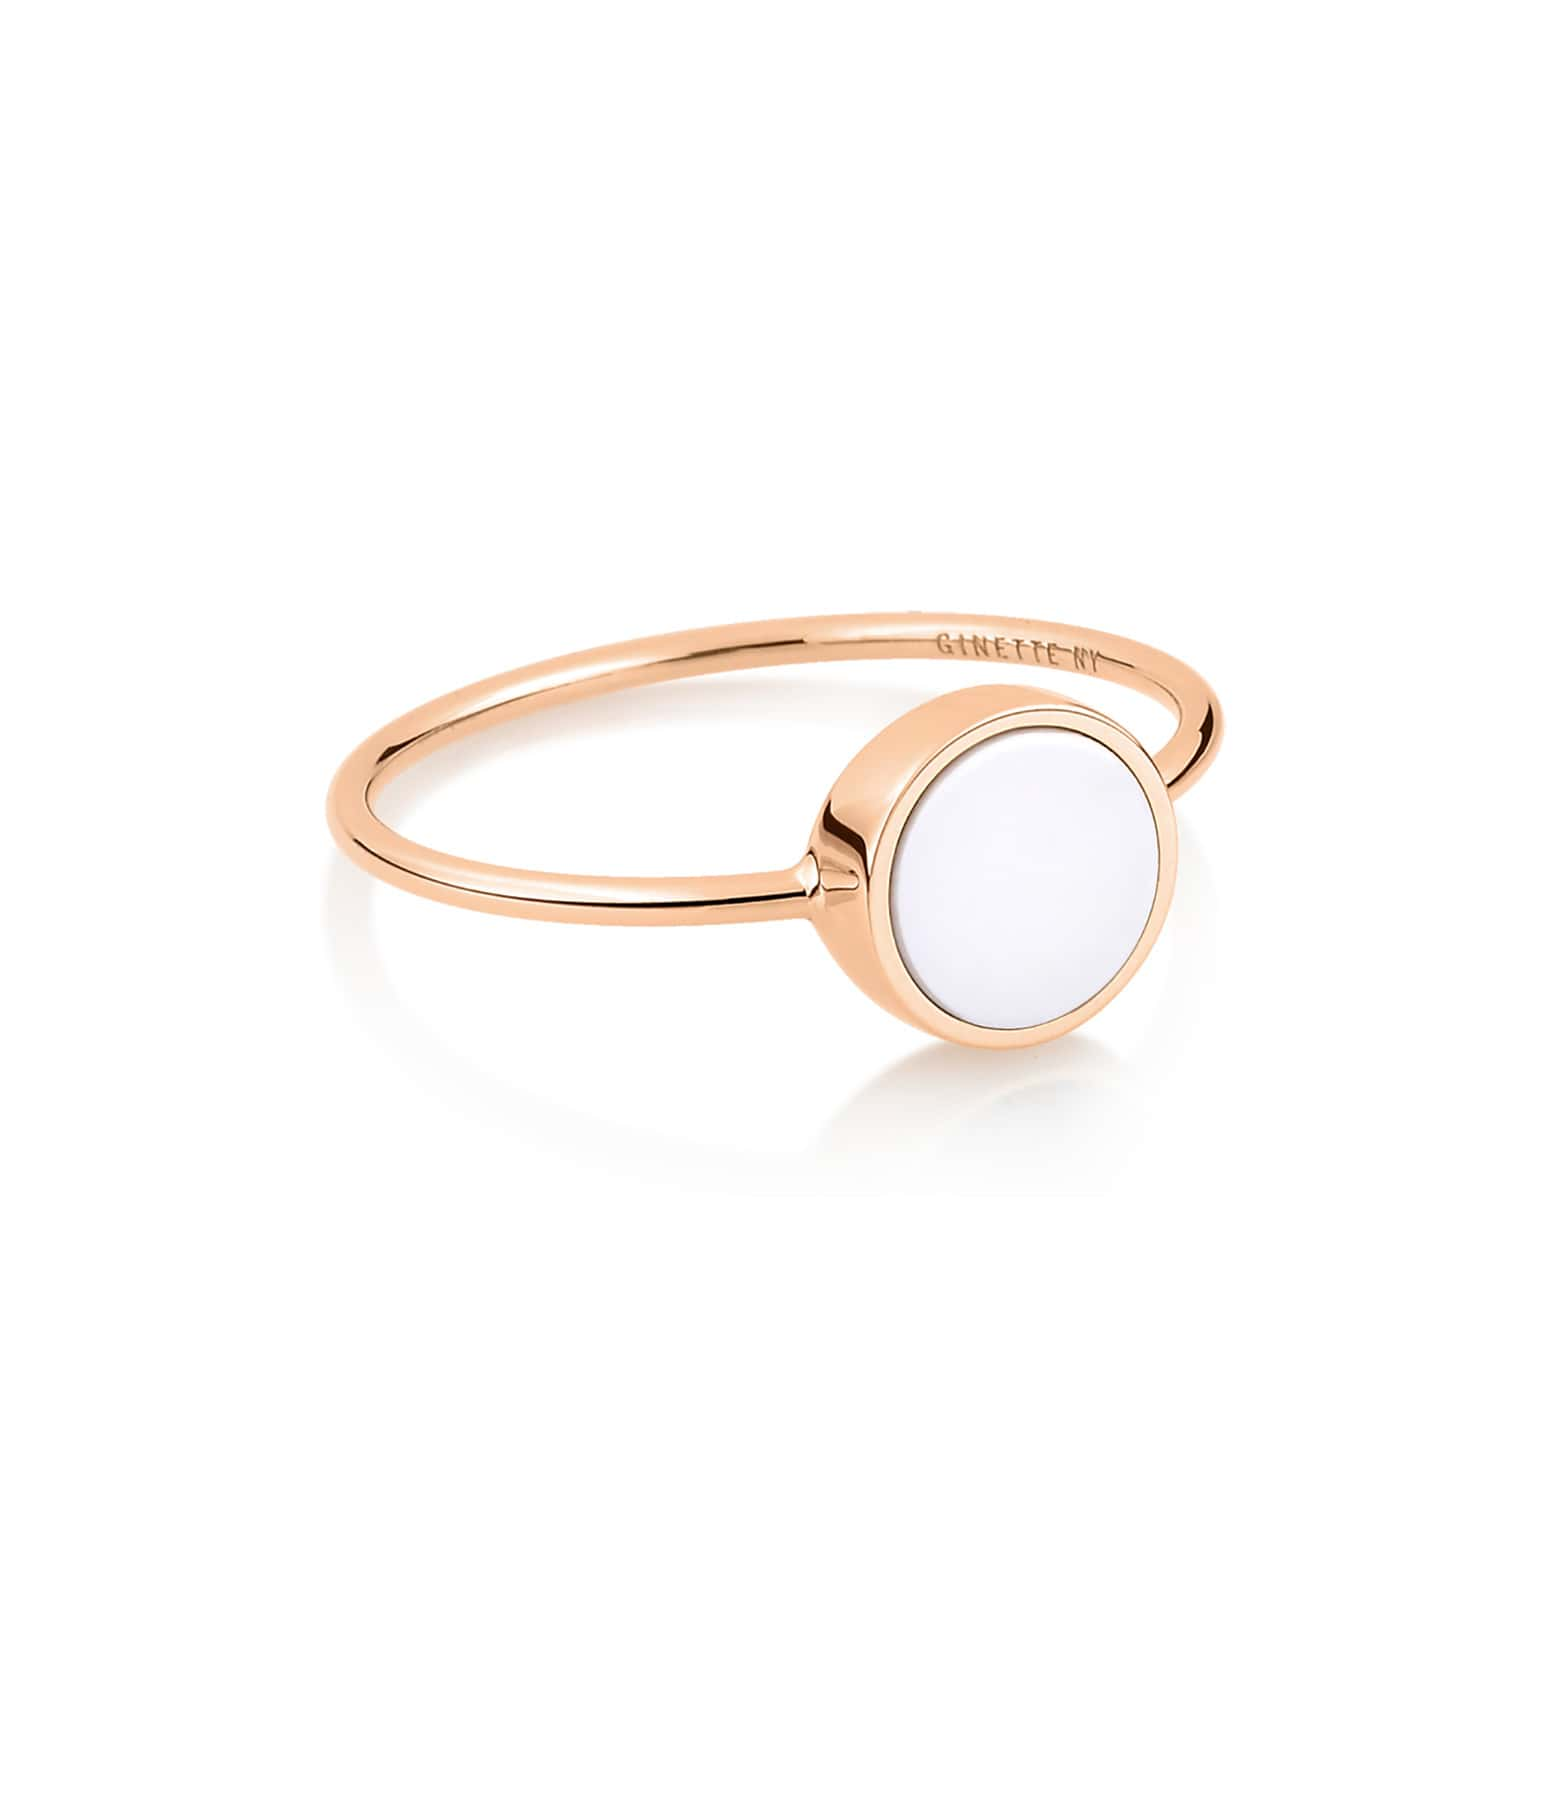 GINETTE NY - Bague Ever Mini Disc Or Rose Agate Blanche